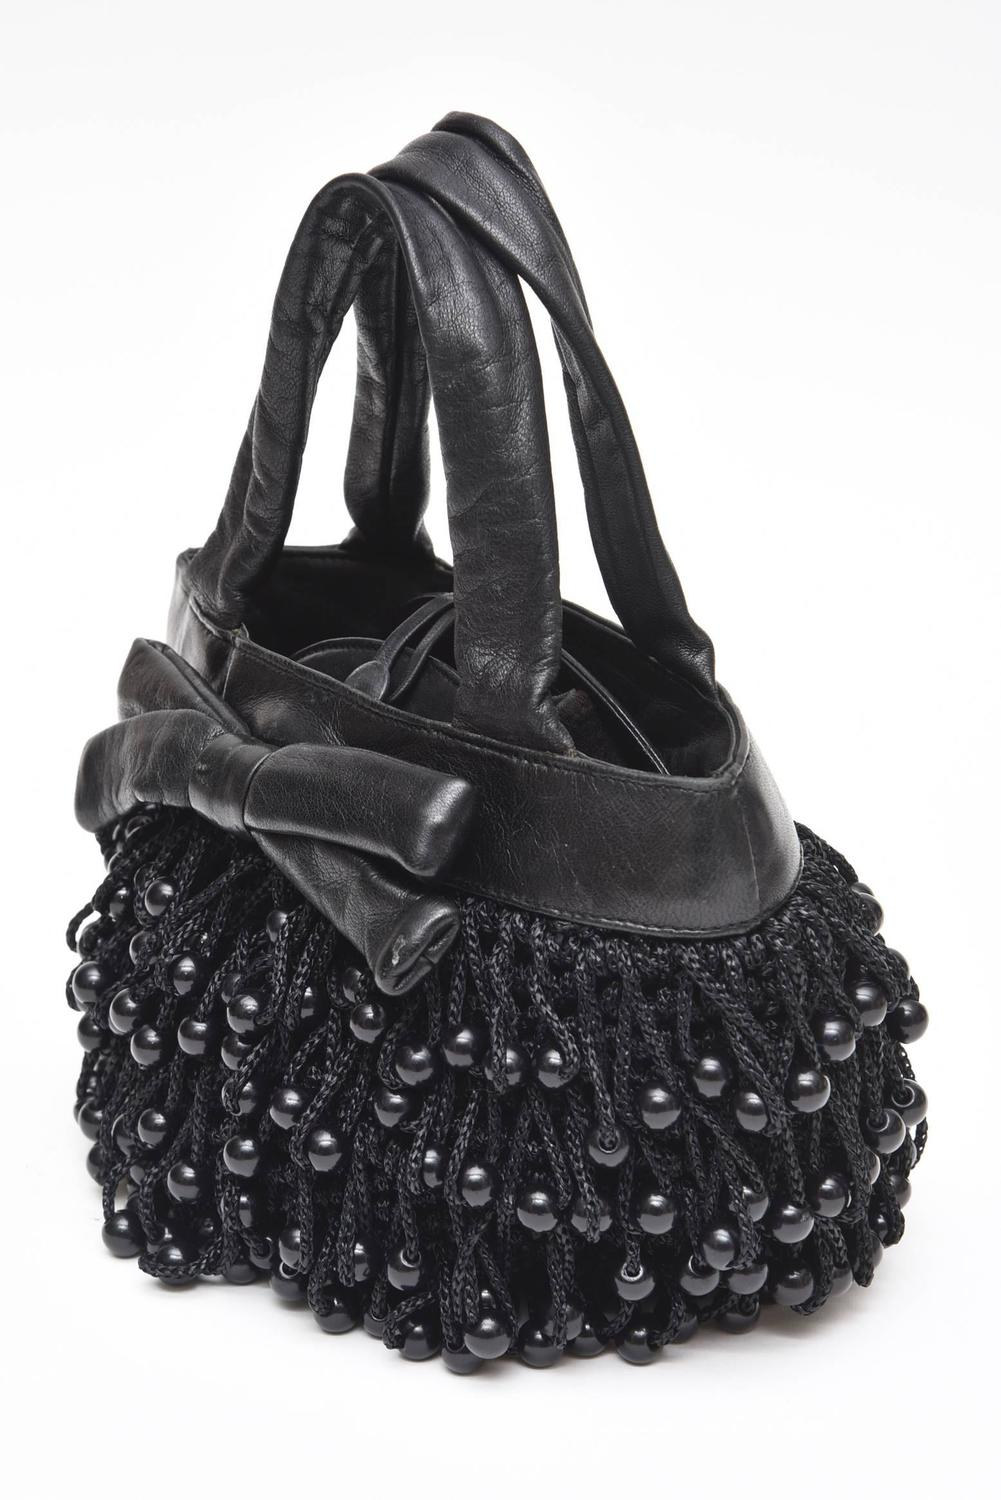 Leather Crochet Bag : Koret Vintage Black Leather, Crochet, Black Beaded Bag at 1stdibs